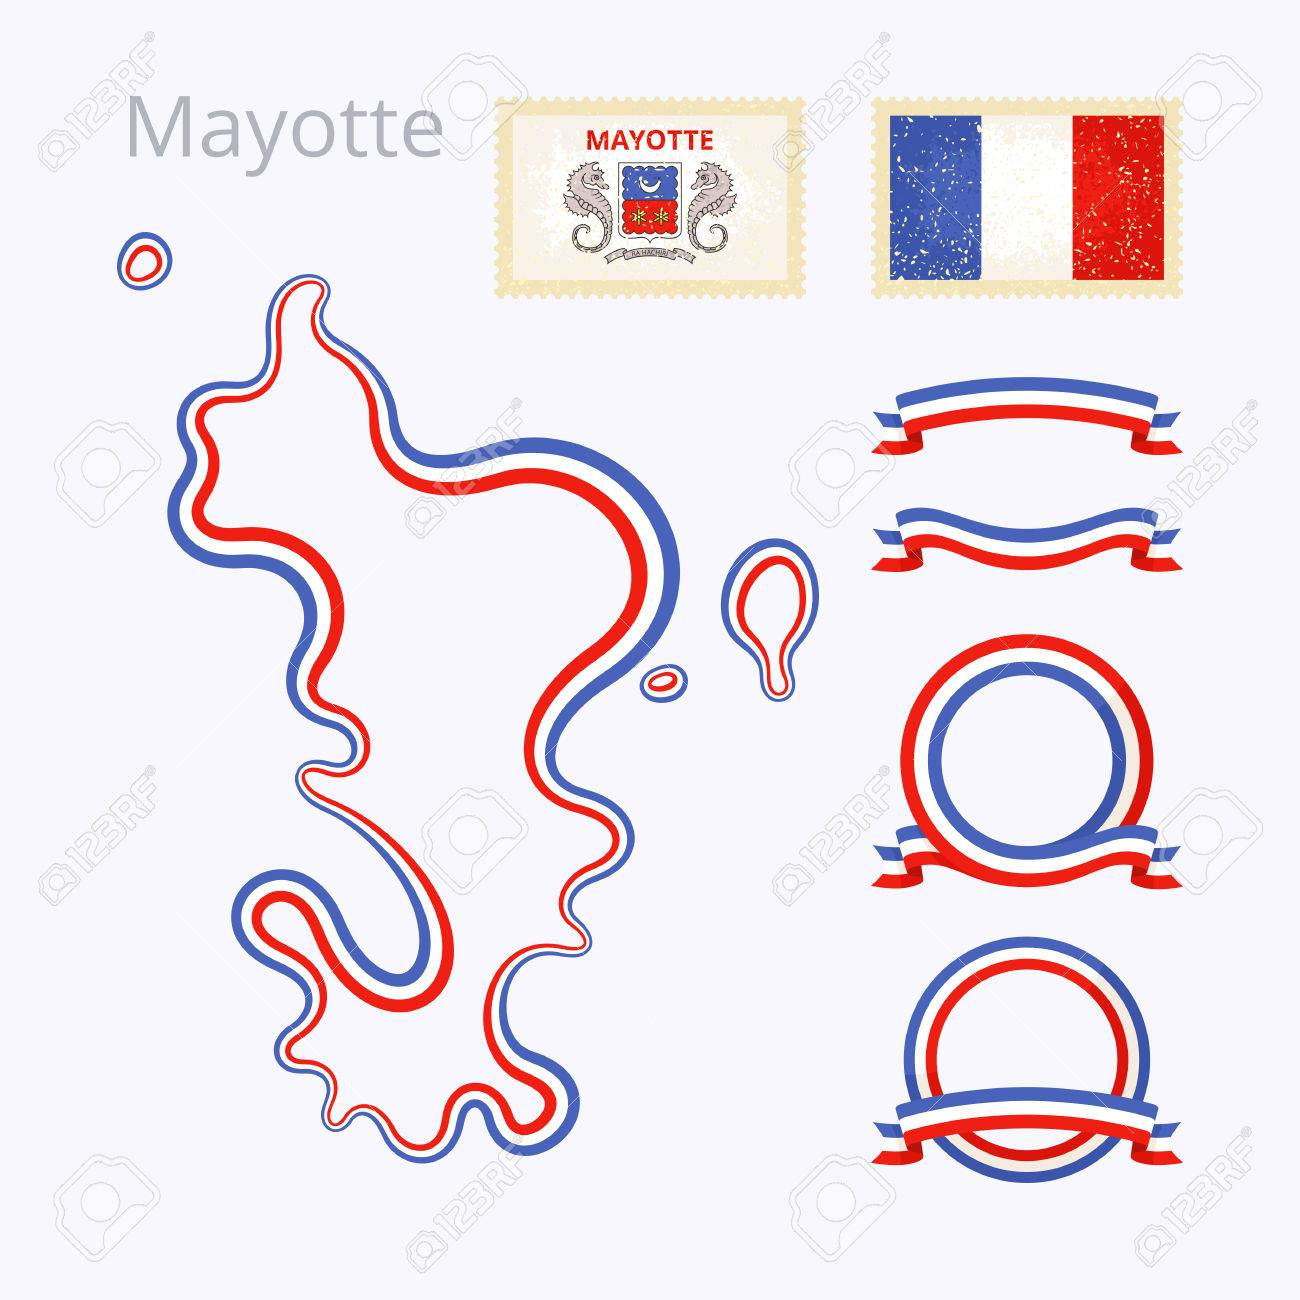 Outline Map Of Mayotte Border Is Marked With Ribbon In National - Package of map colors